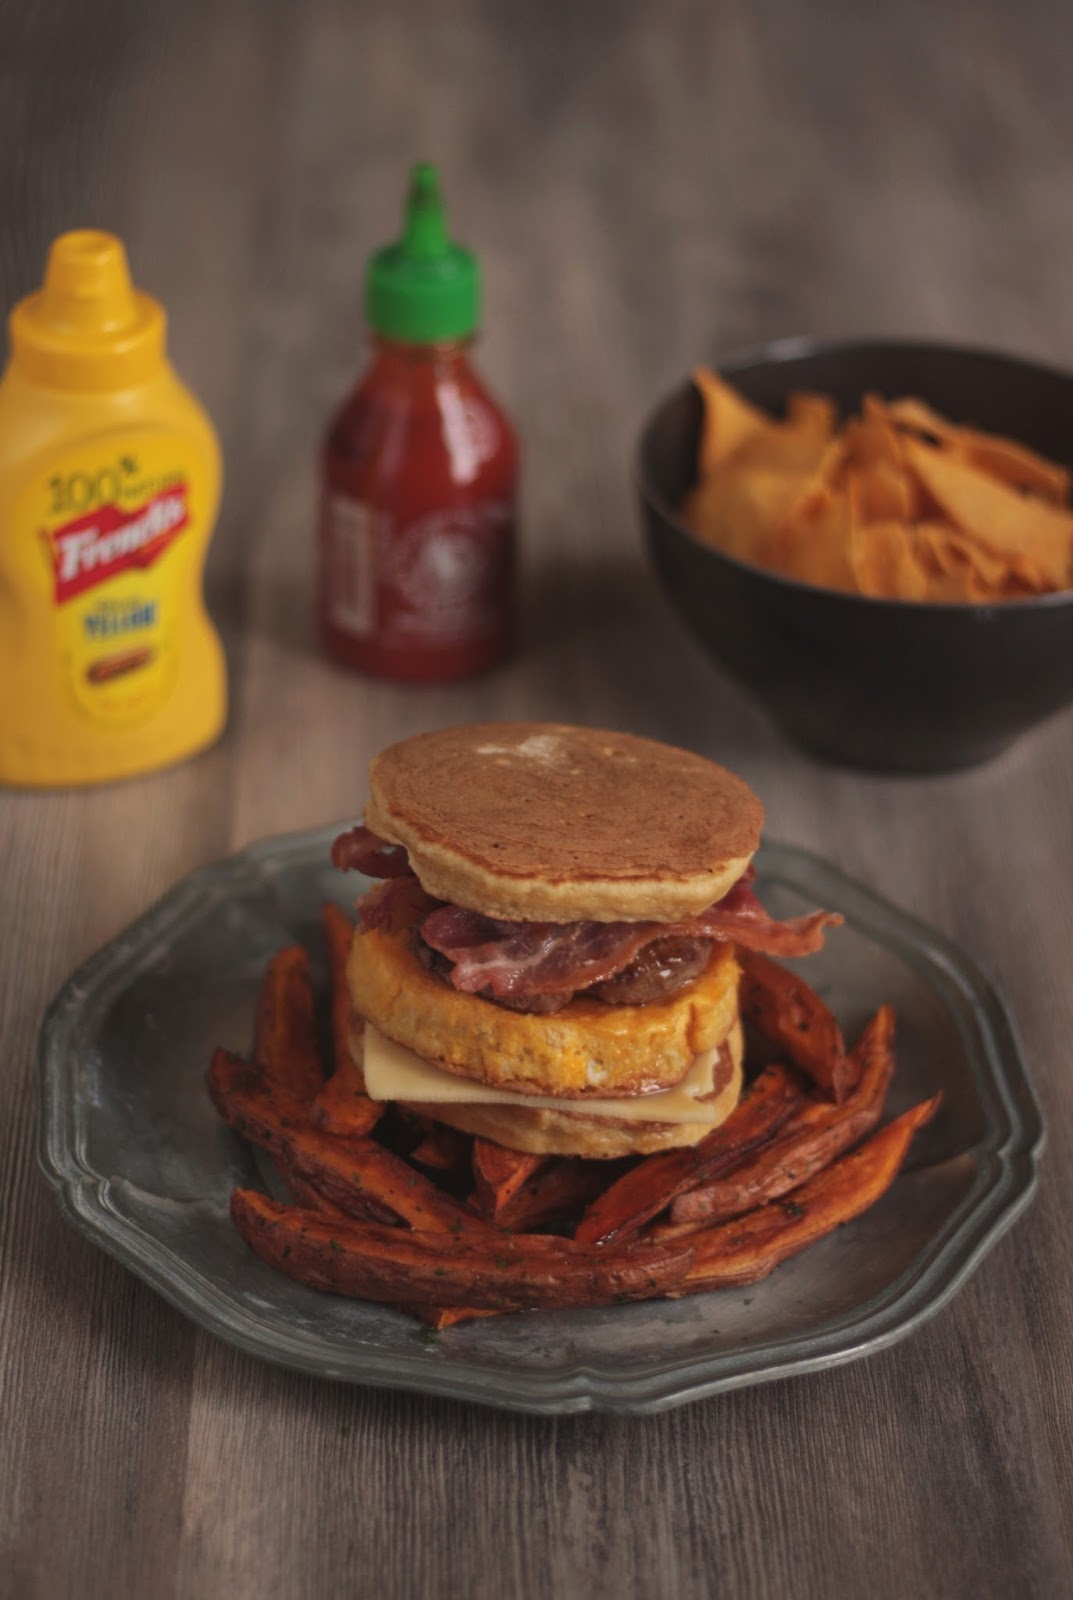 A Texas Pancake Sandwich with Egg and Ground Beef Pattie, Sweet Potato Fries and the best syrup of all times - Sriracha Flavored Maple Syrup - recipe brought to you by Pancake Stories.